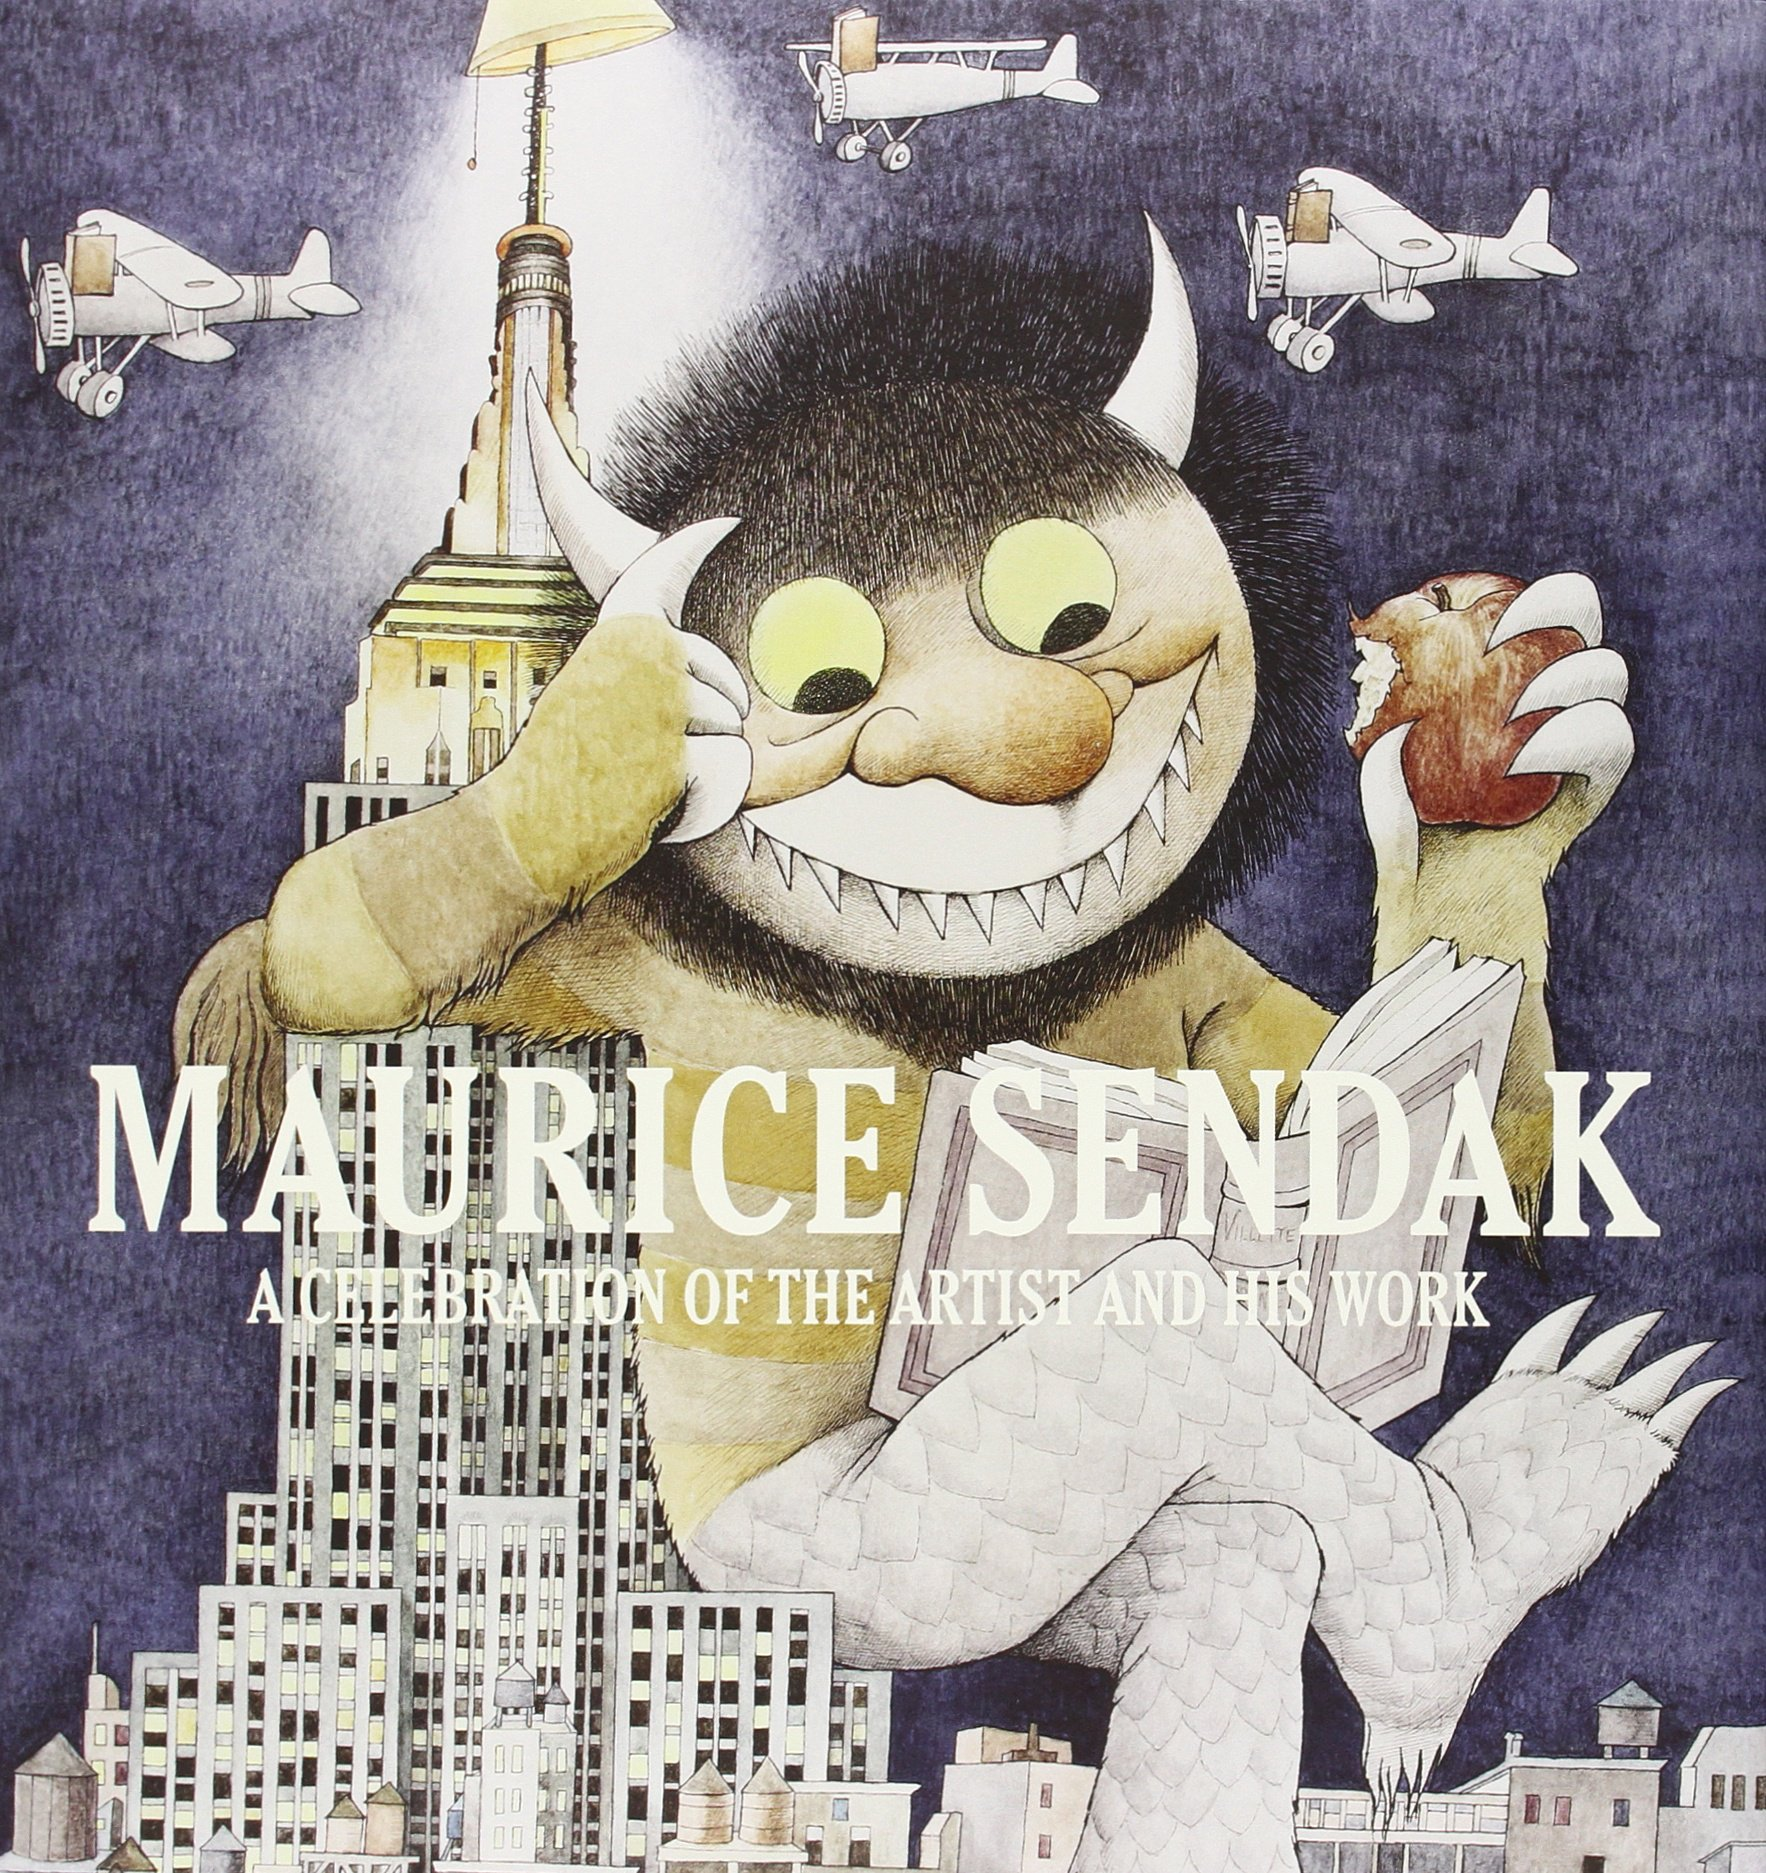 maurice sendak  Maurice Sendak: A Celebration of the Artist and His Work: Justin G ...